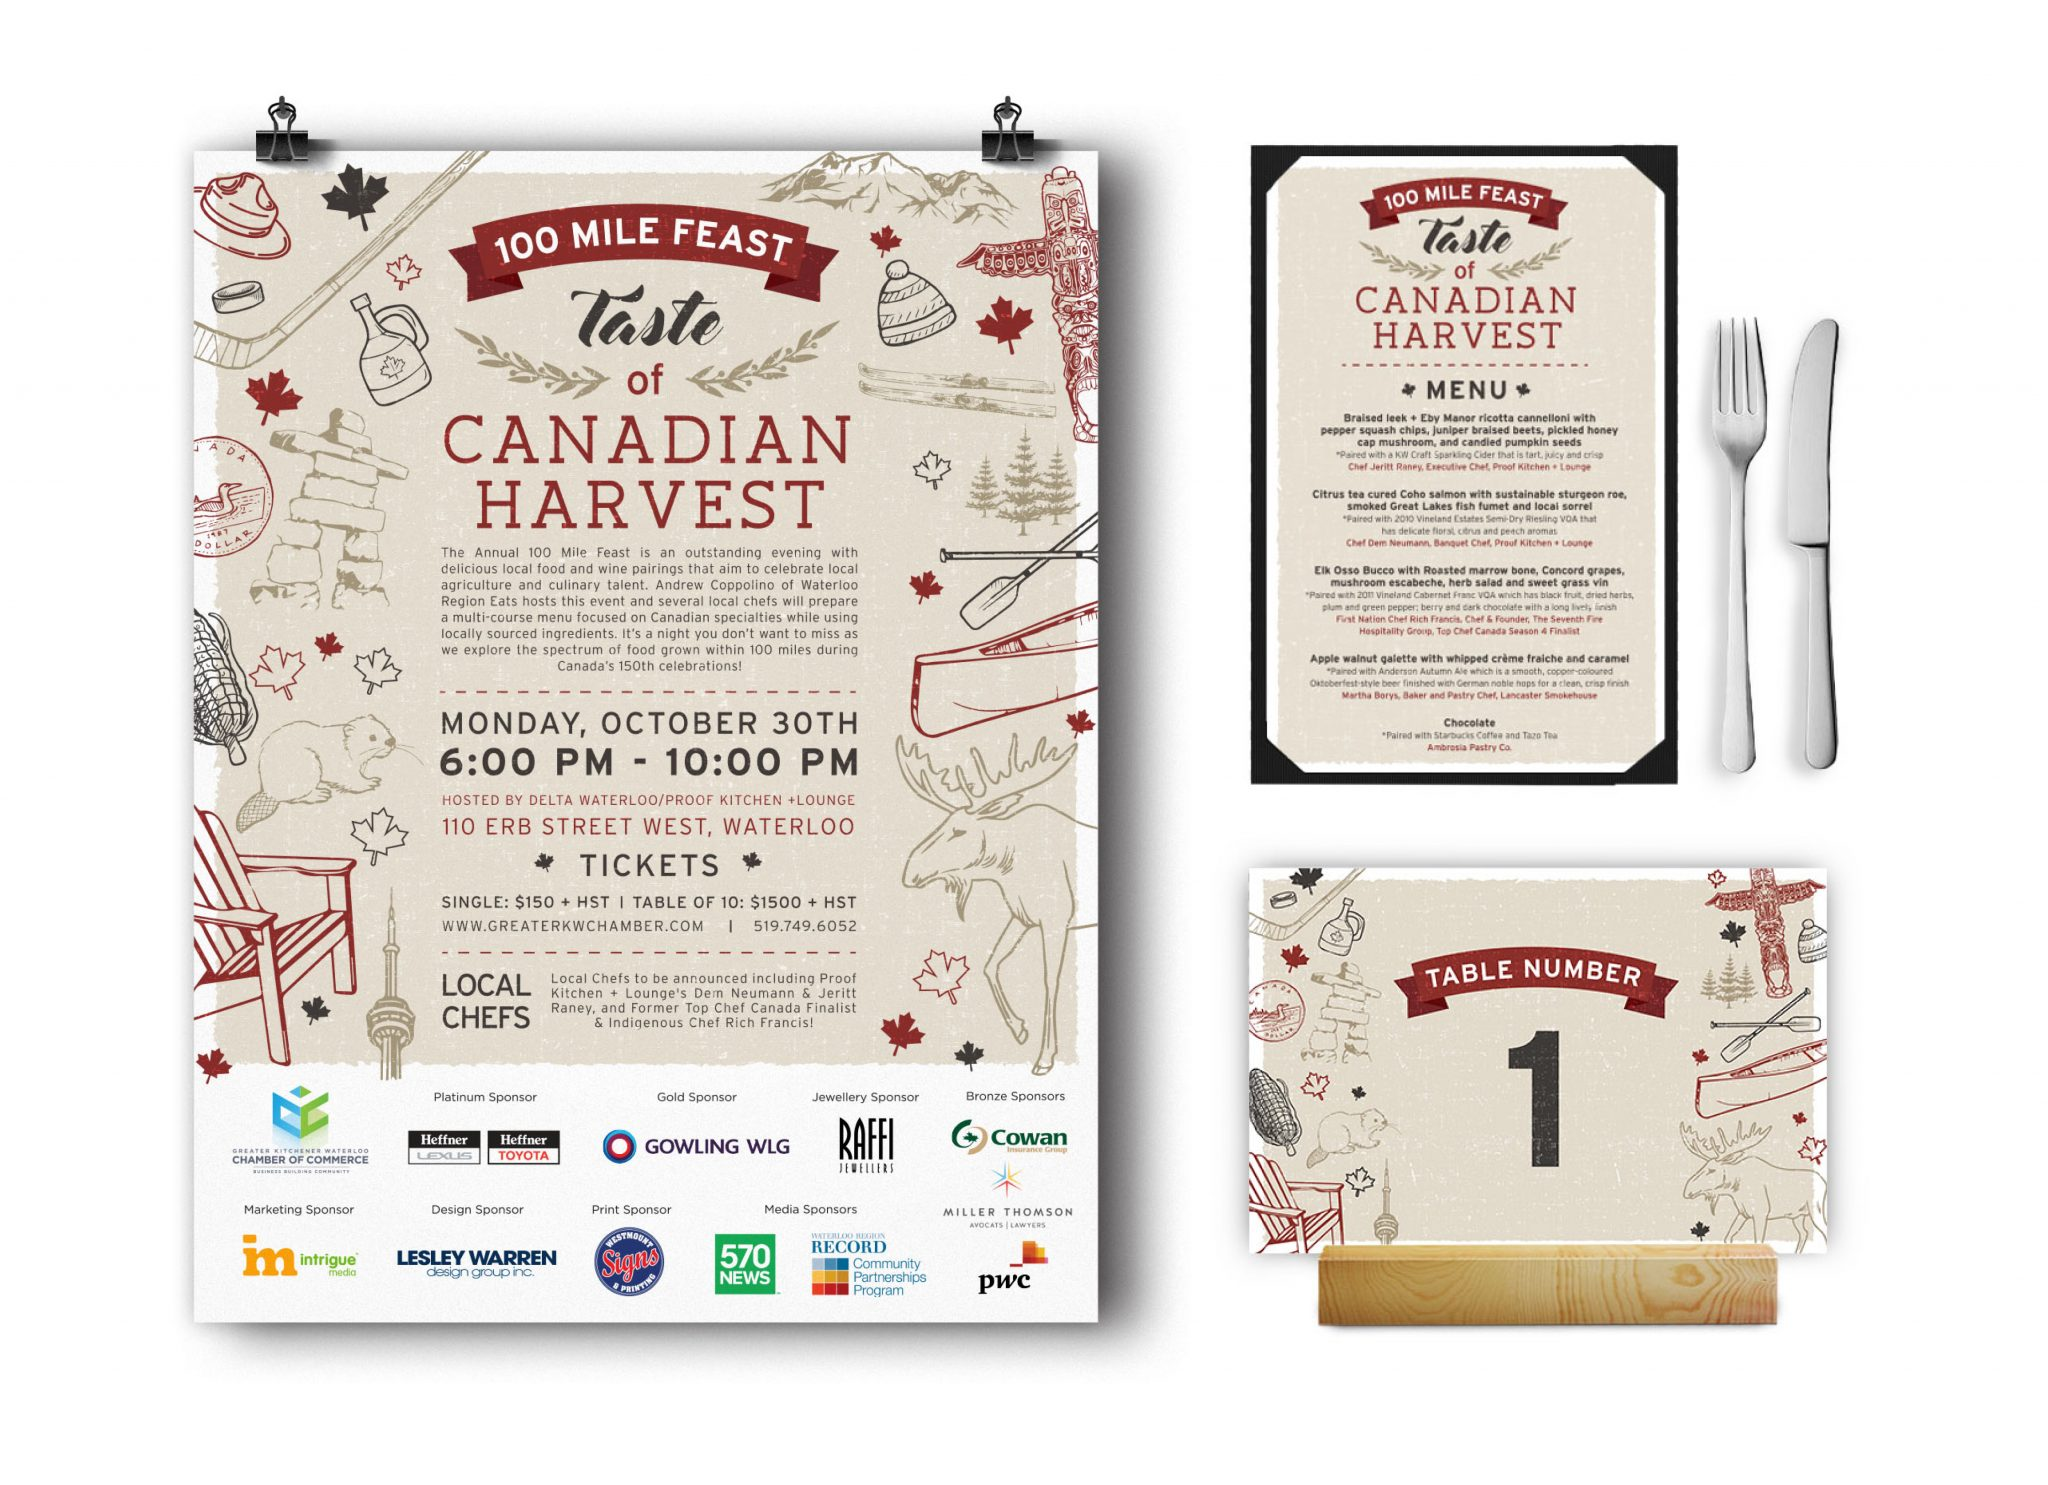 100 Mile Feast, Canadian Harvest menu, poster, and table number.